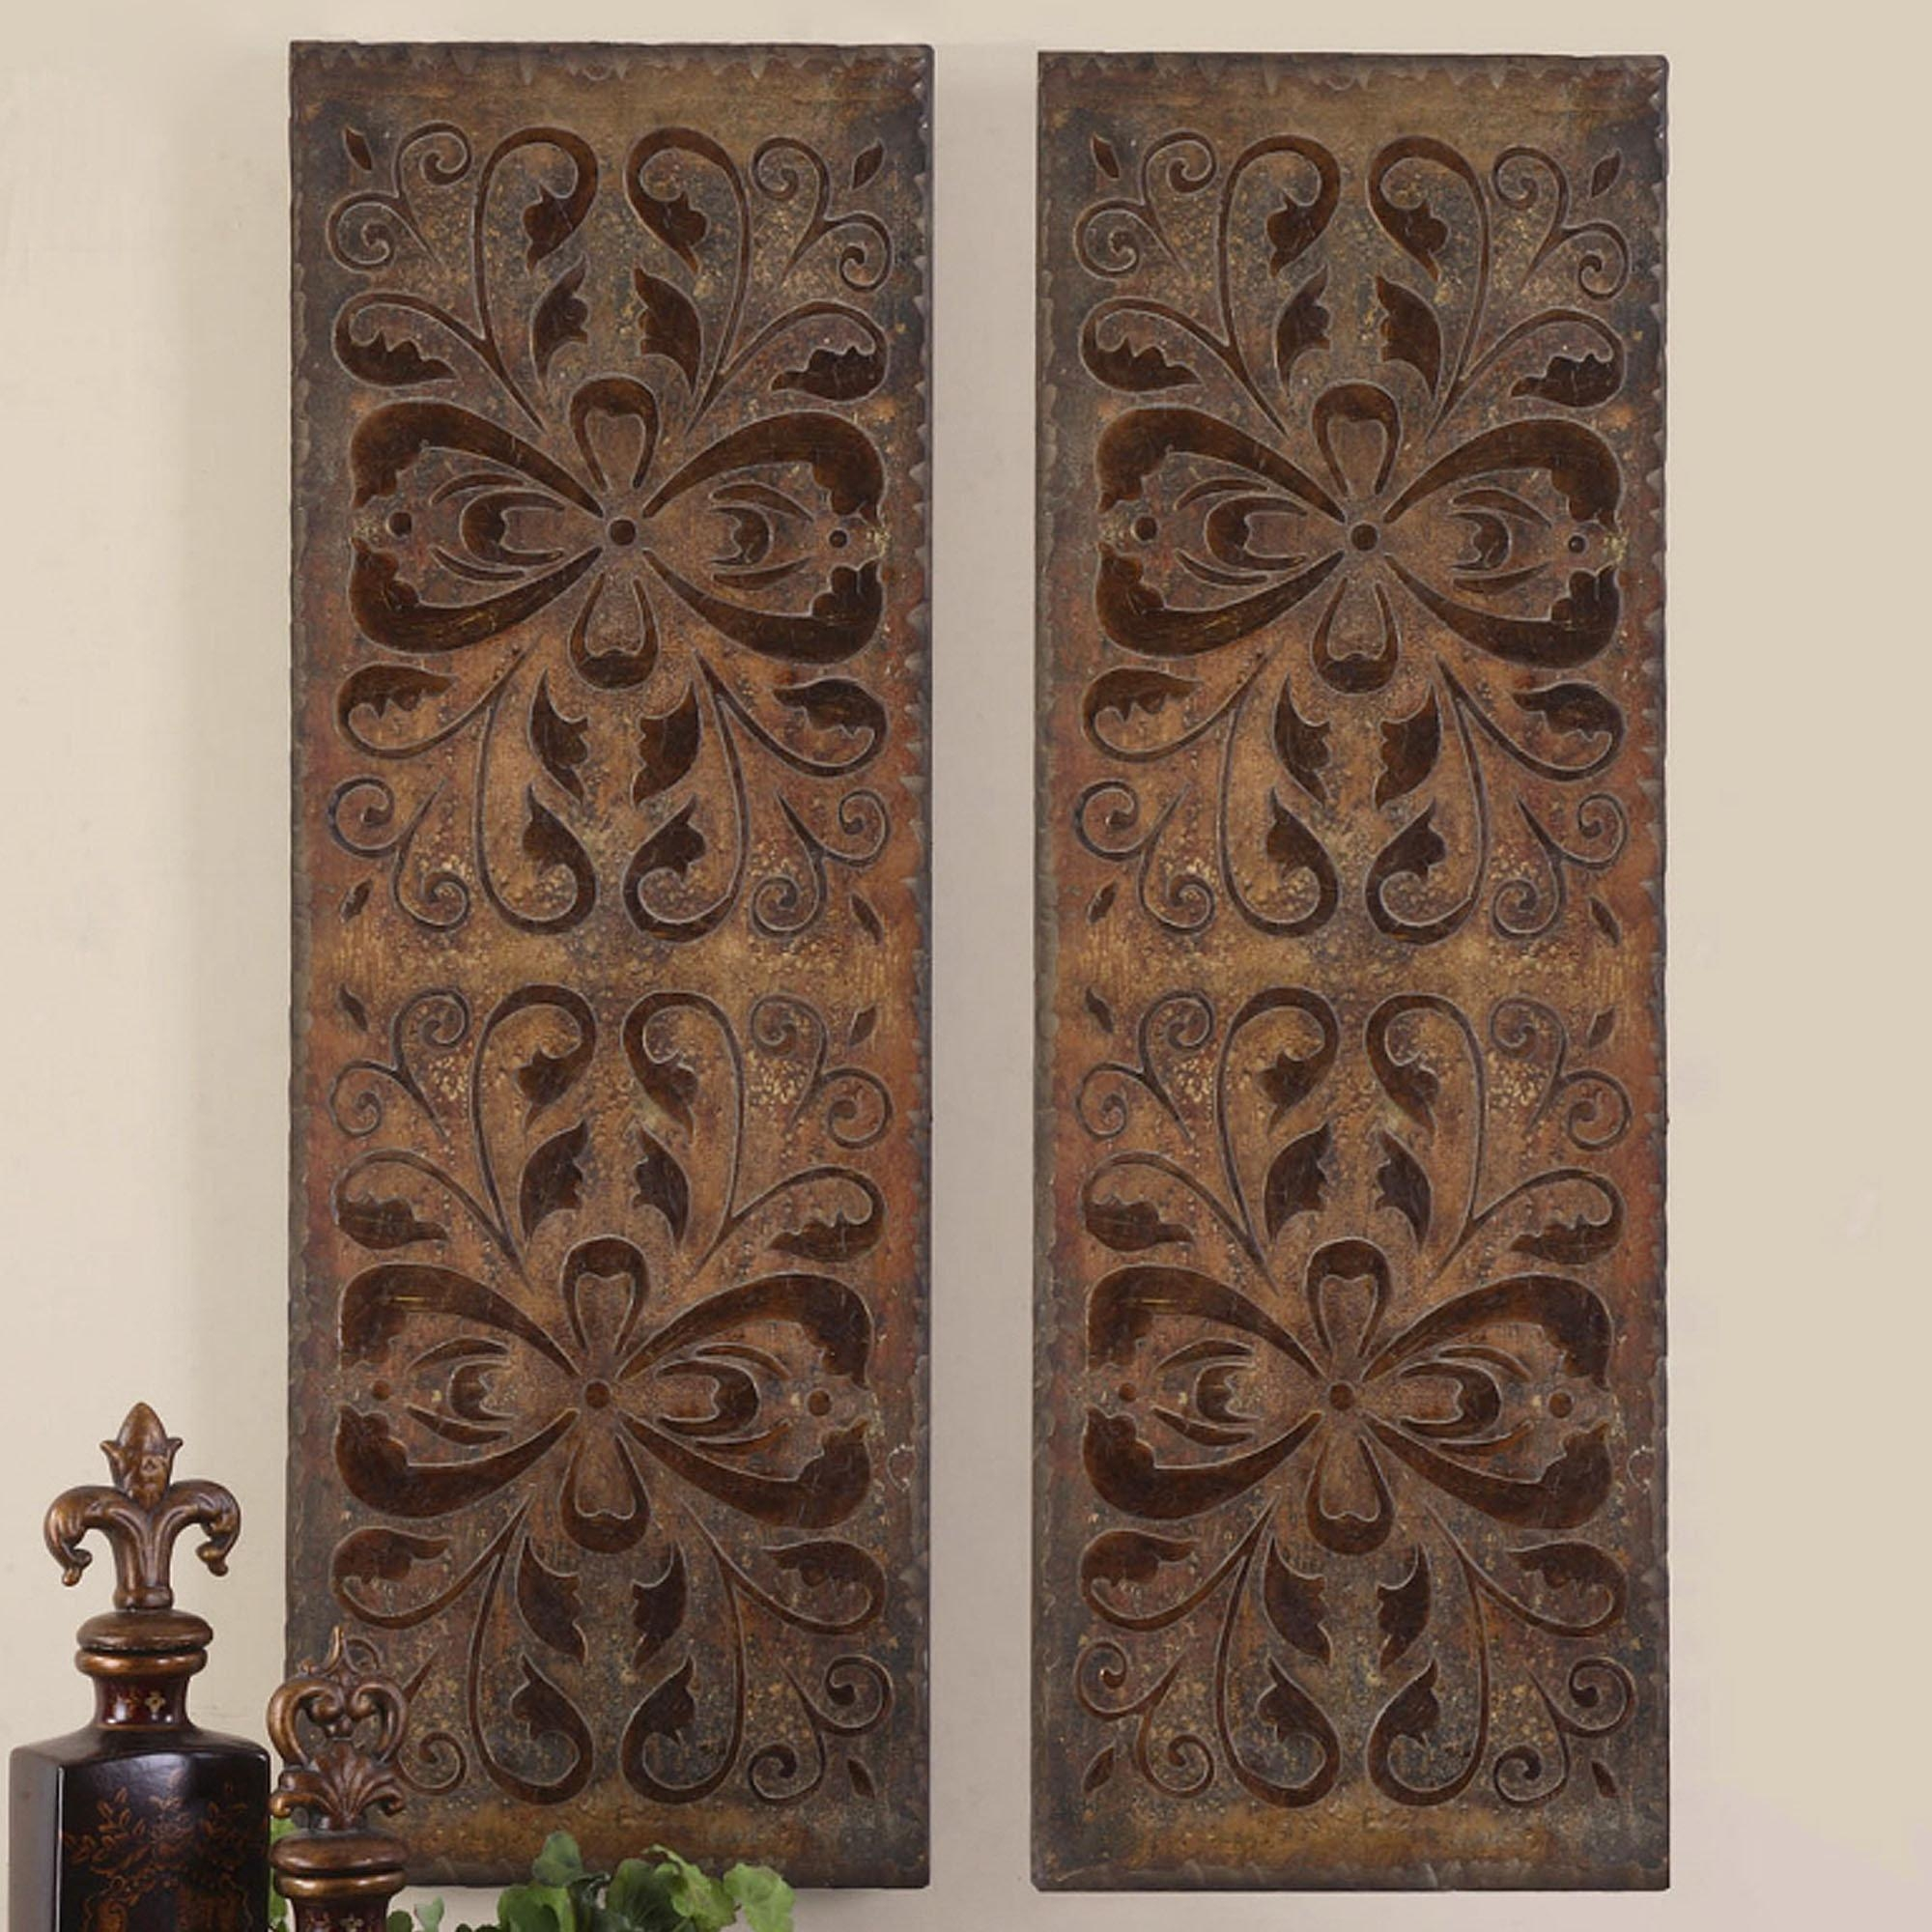 Wall Art Design Ideas: Decorative Design Wood Wall Panel Art With Regard To Stained Wood Wall Art (Image 14 of 20)